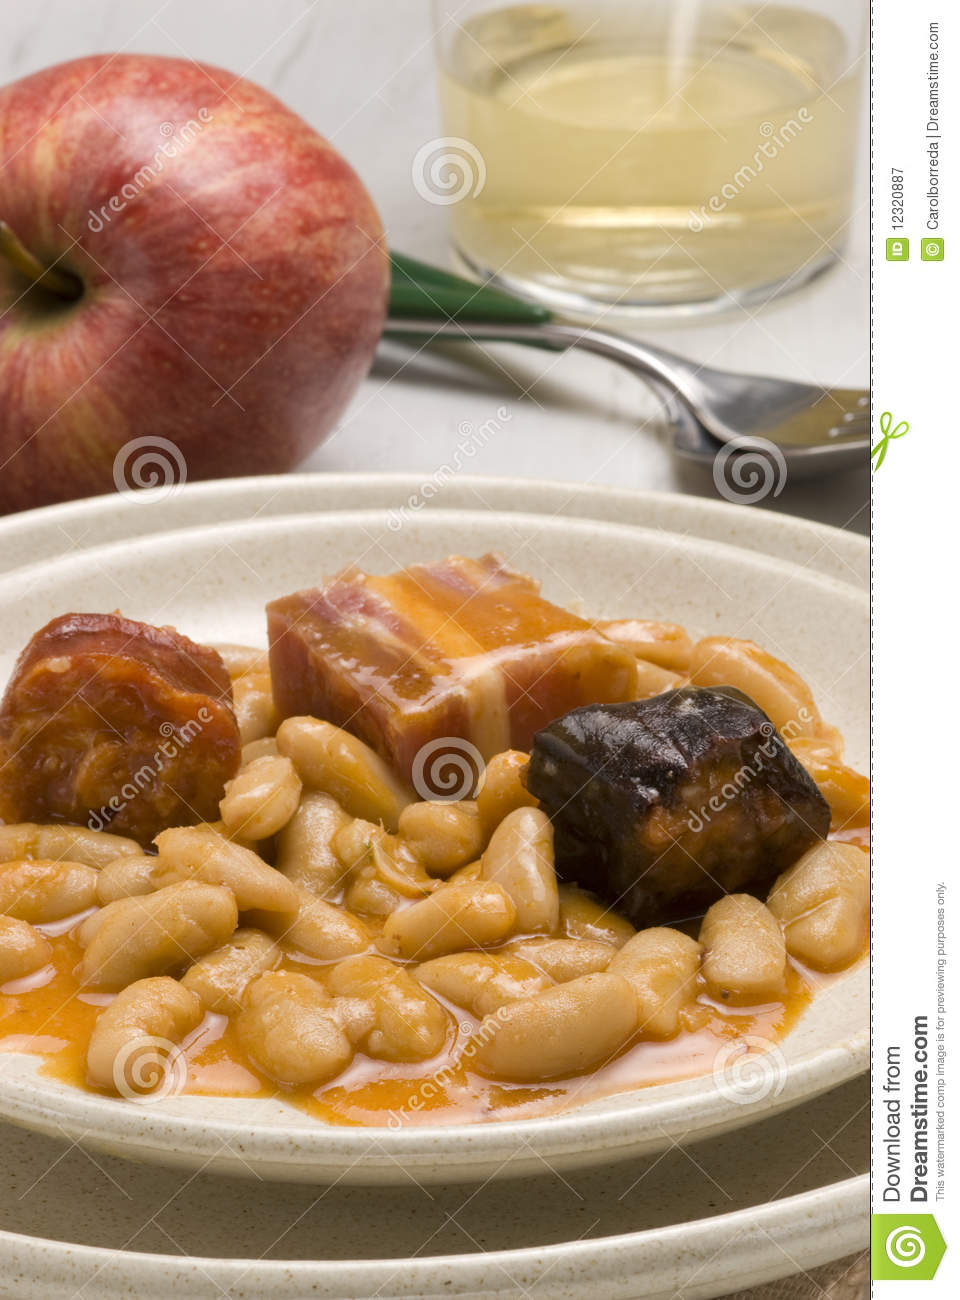 Ham and beans asturias style spanish cuisine fa royalty for Asturian cuisine